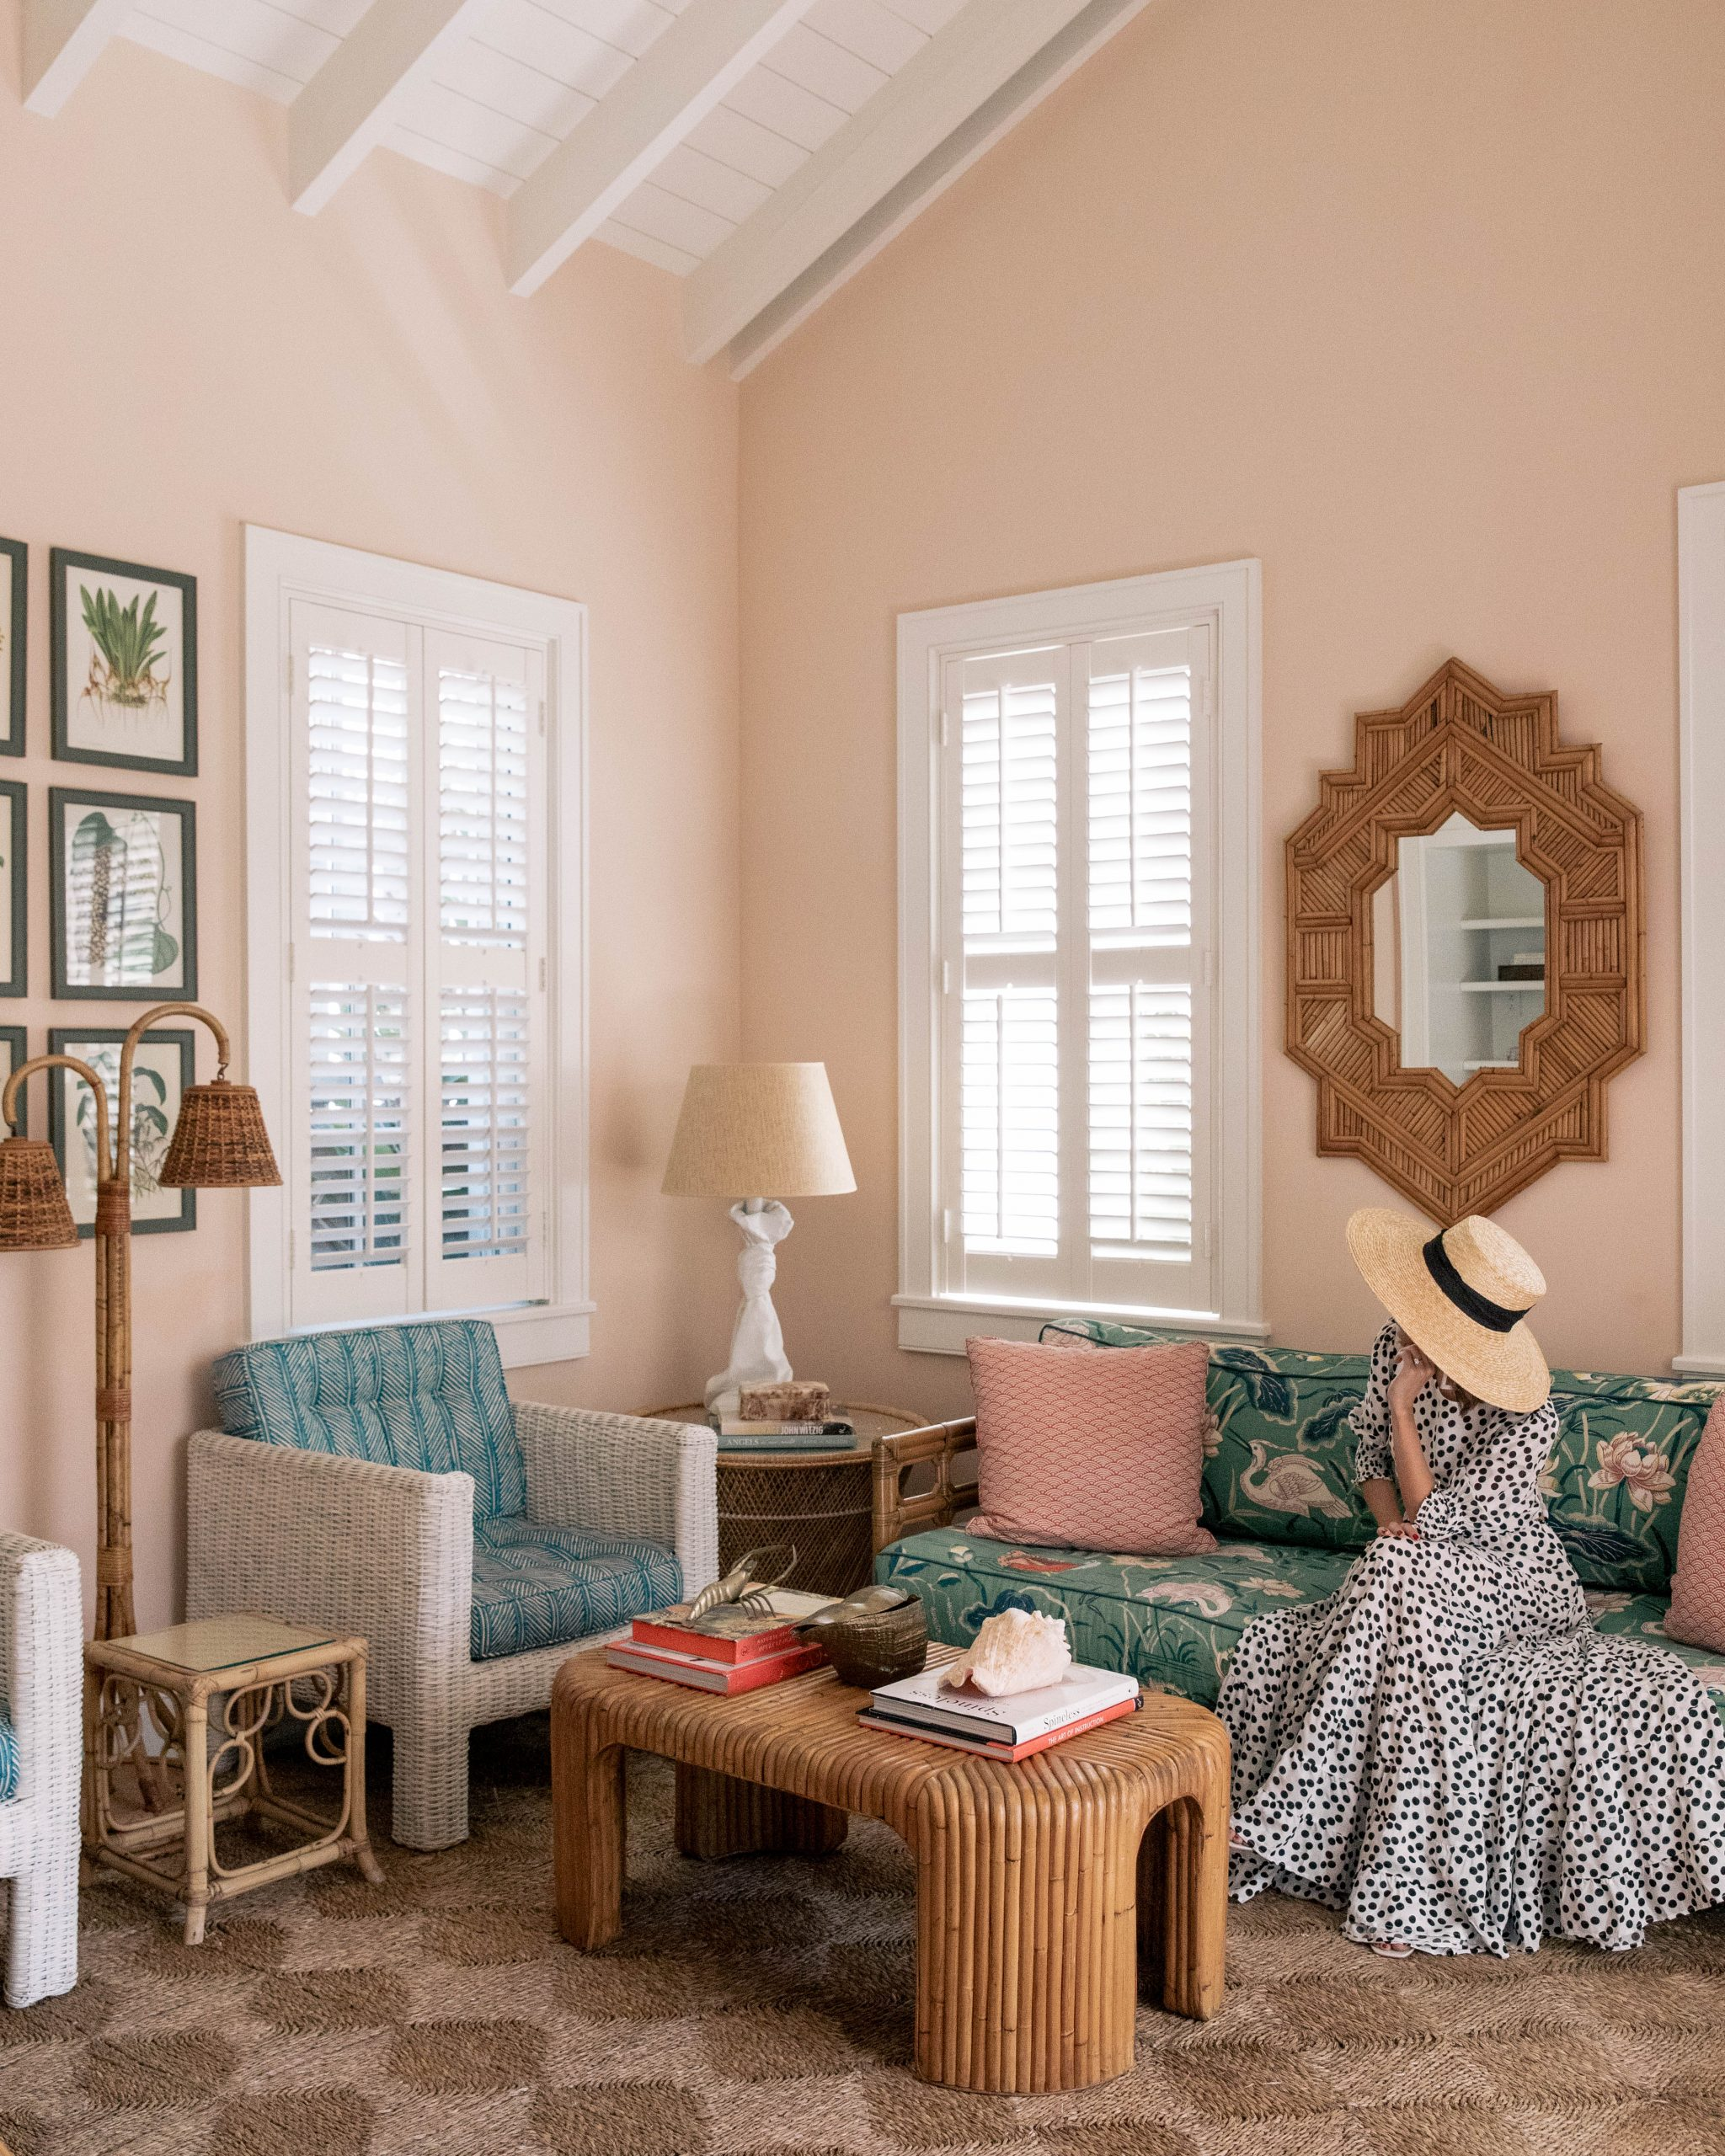 Stephanie Hill shares Weekend in Harbour Island on The Style Bungalow